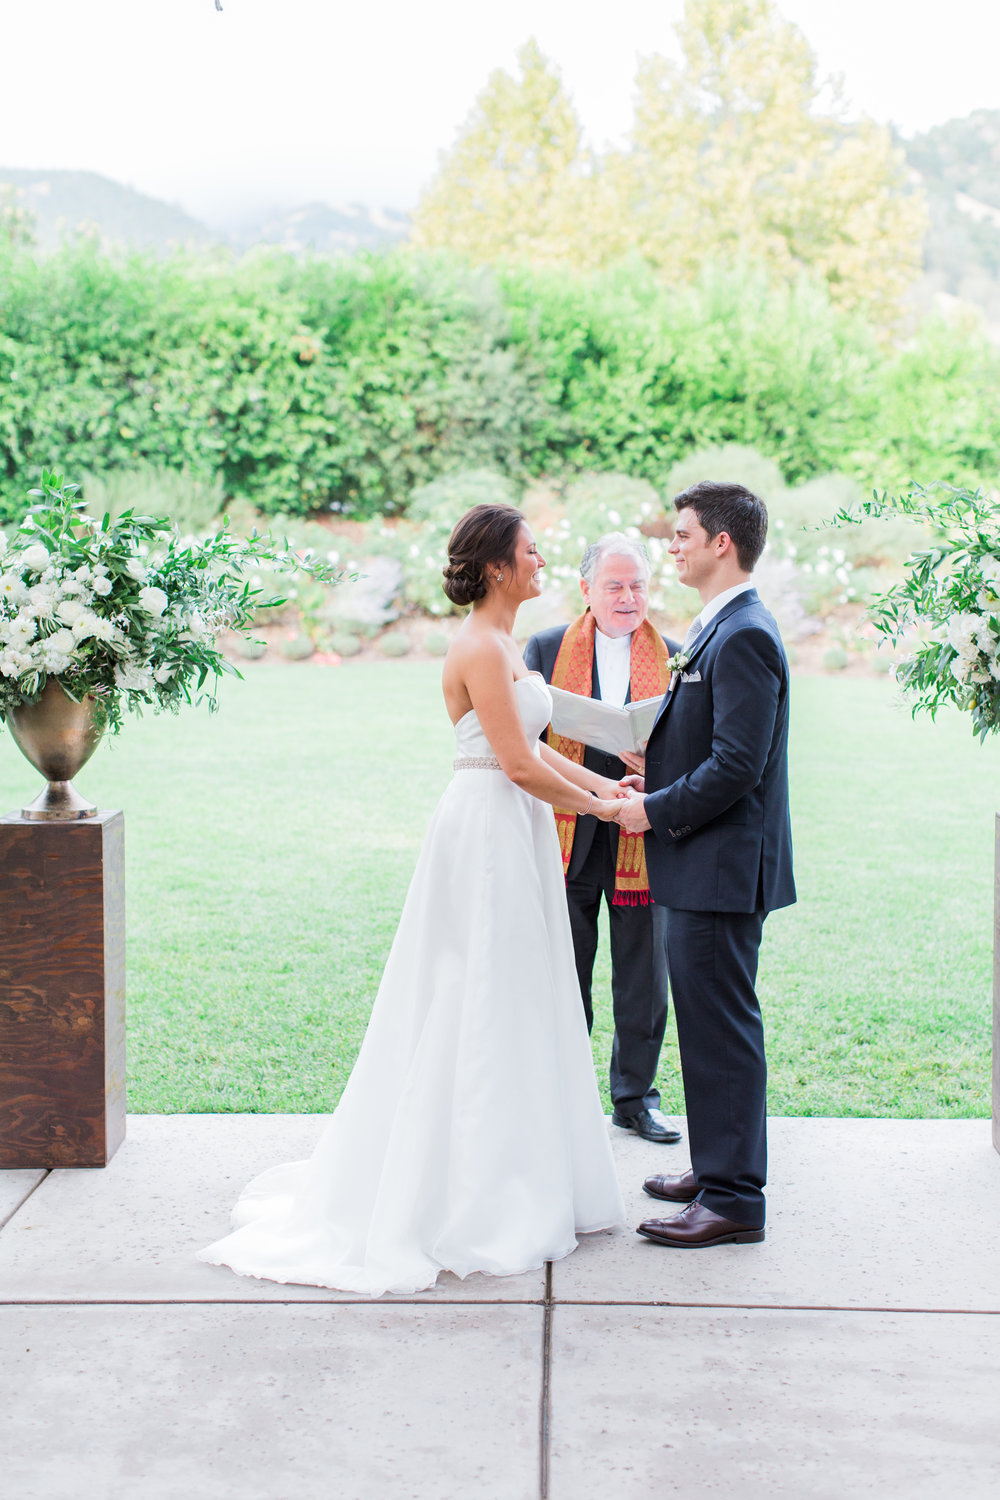 intimate-wedding-at-solage-calistoga-in-napa-68.jpg